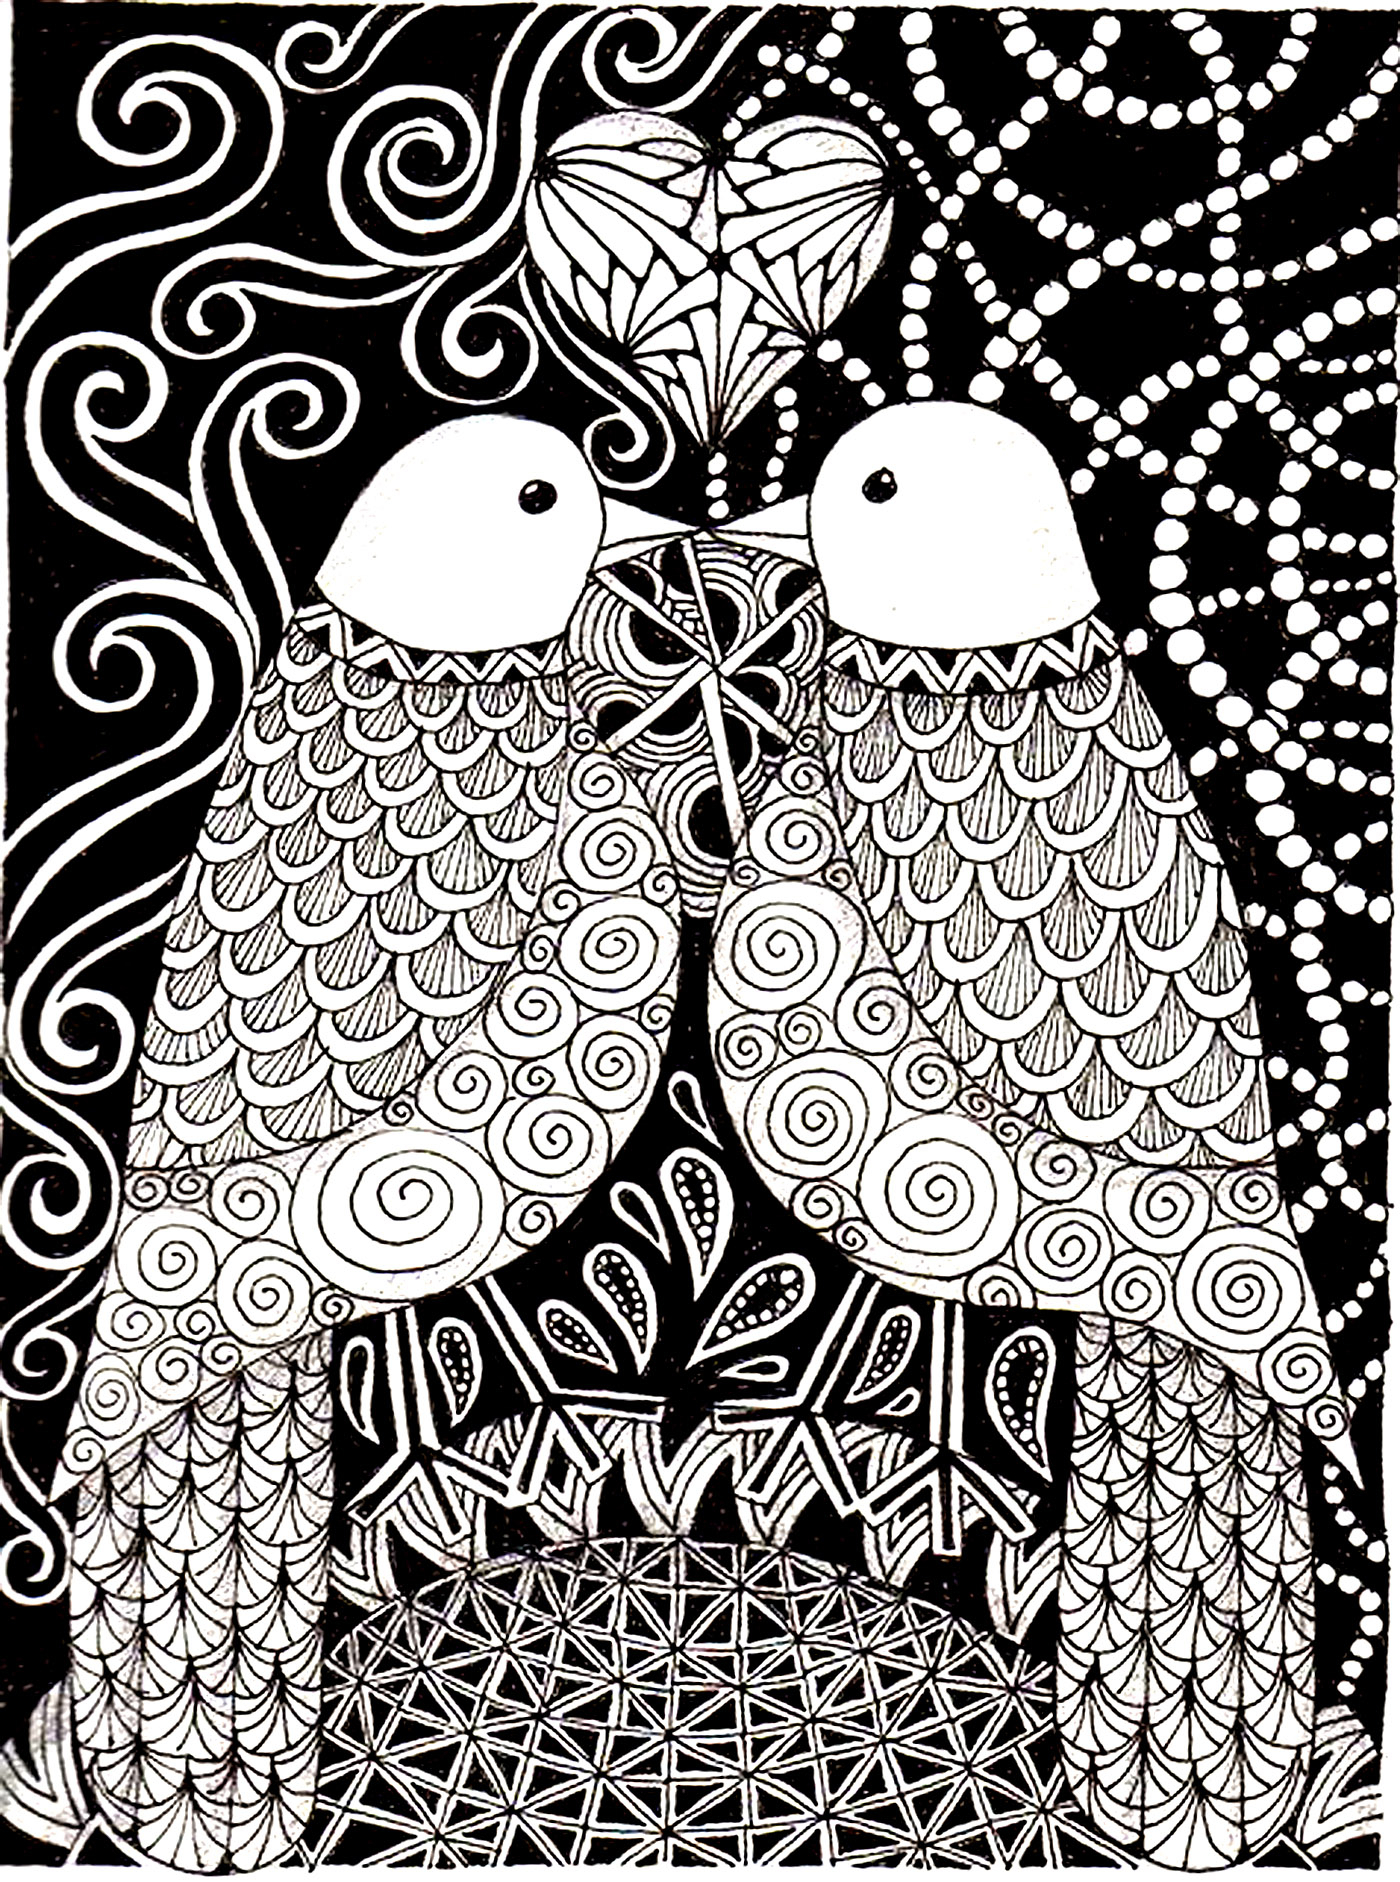 Love Bird Coloring Pages Love Birds Birds Adult Coloring Pages